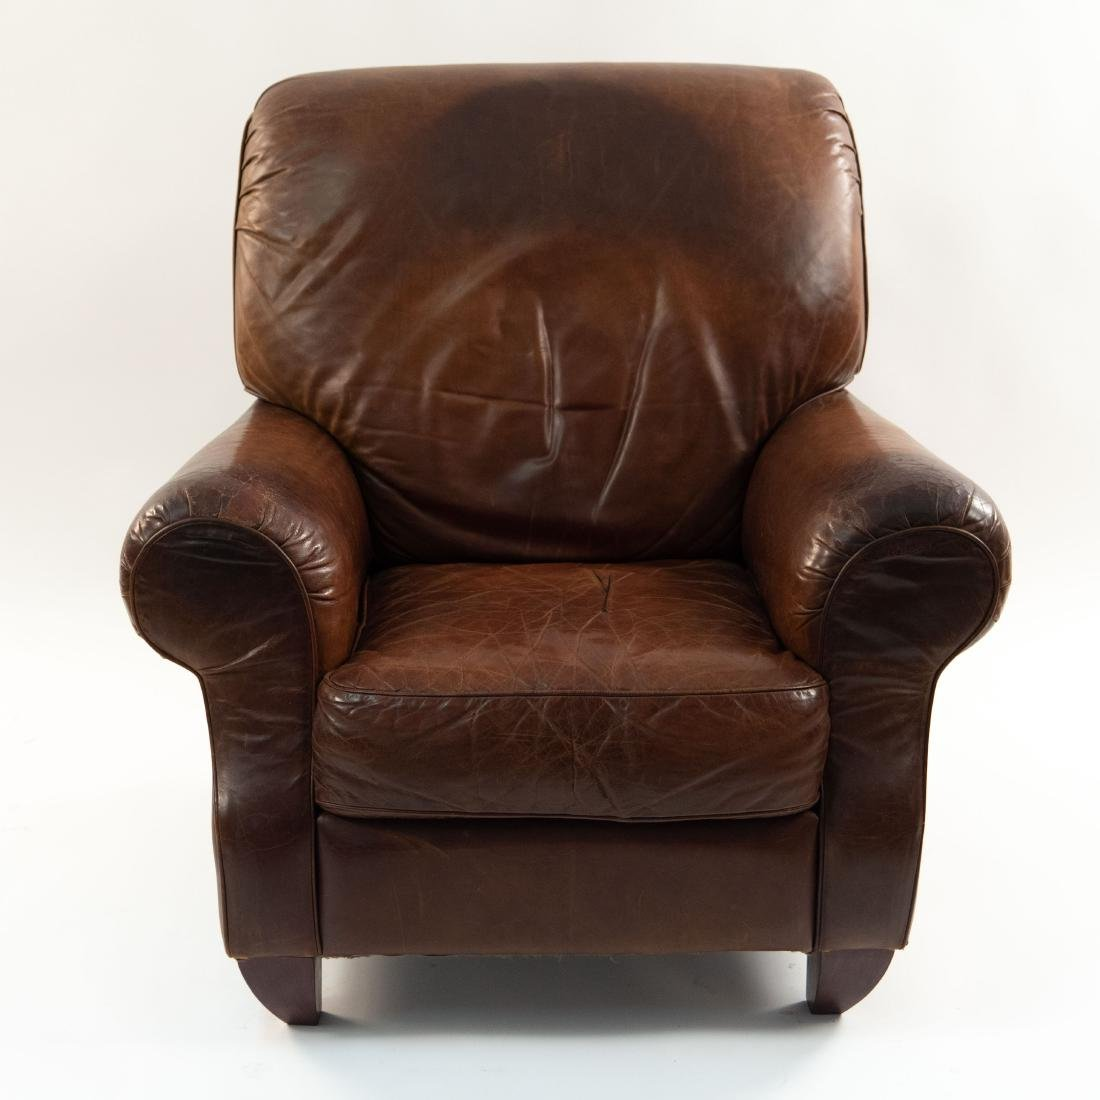 VINTAGE LEATHER LOUNGE CHAIR